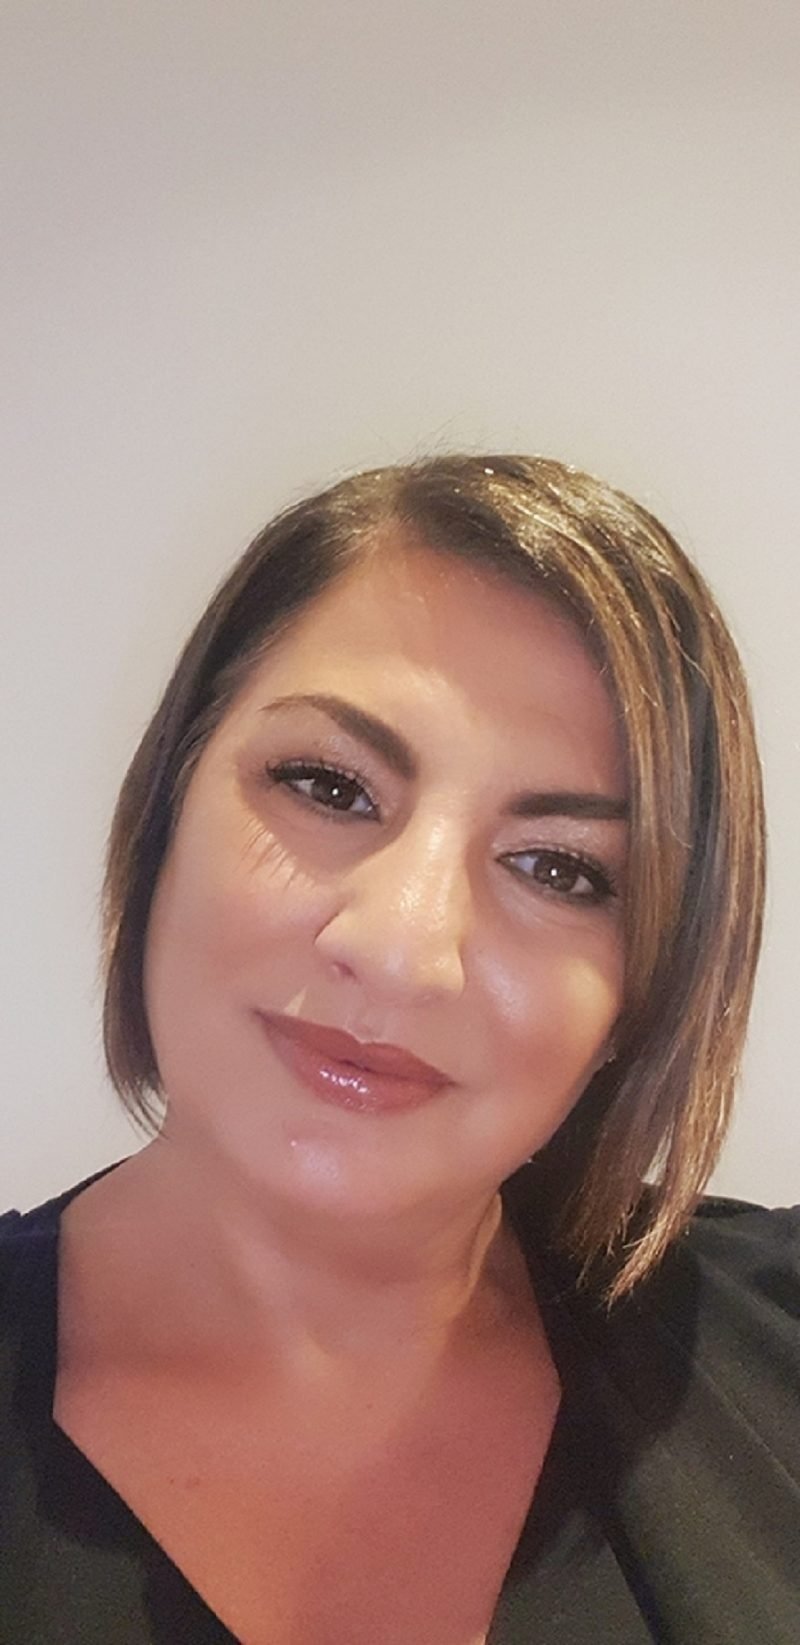 Stefania Rossi who owns Utopia Beauty Advanced Skincare in Hornchurch